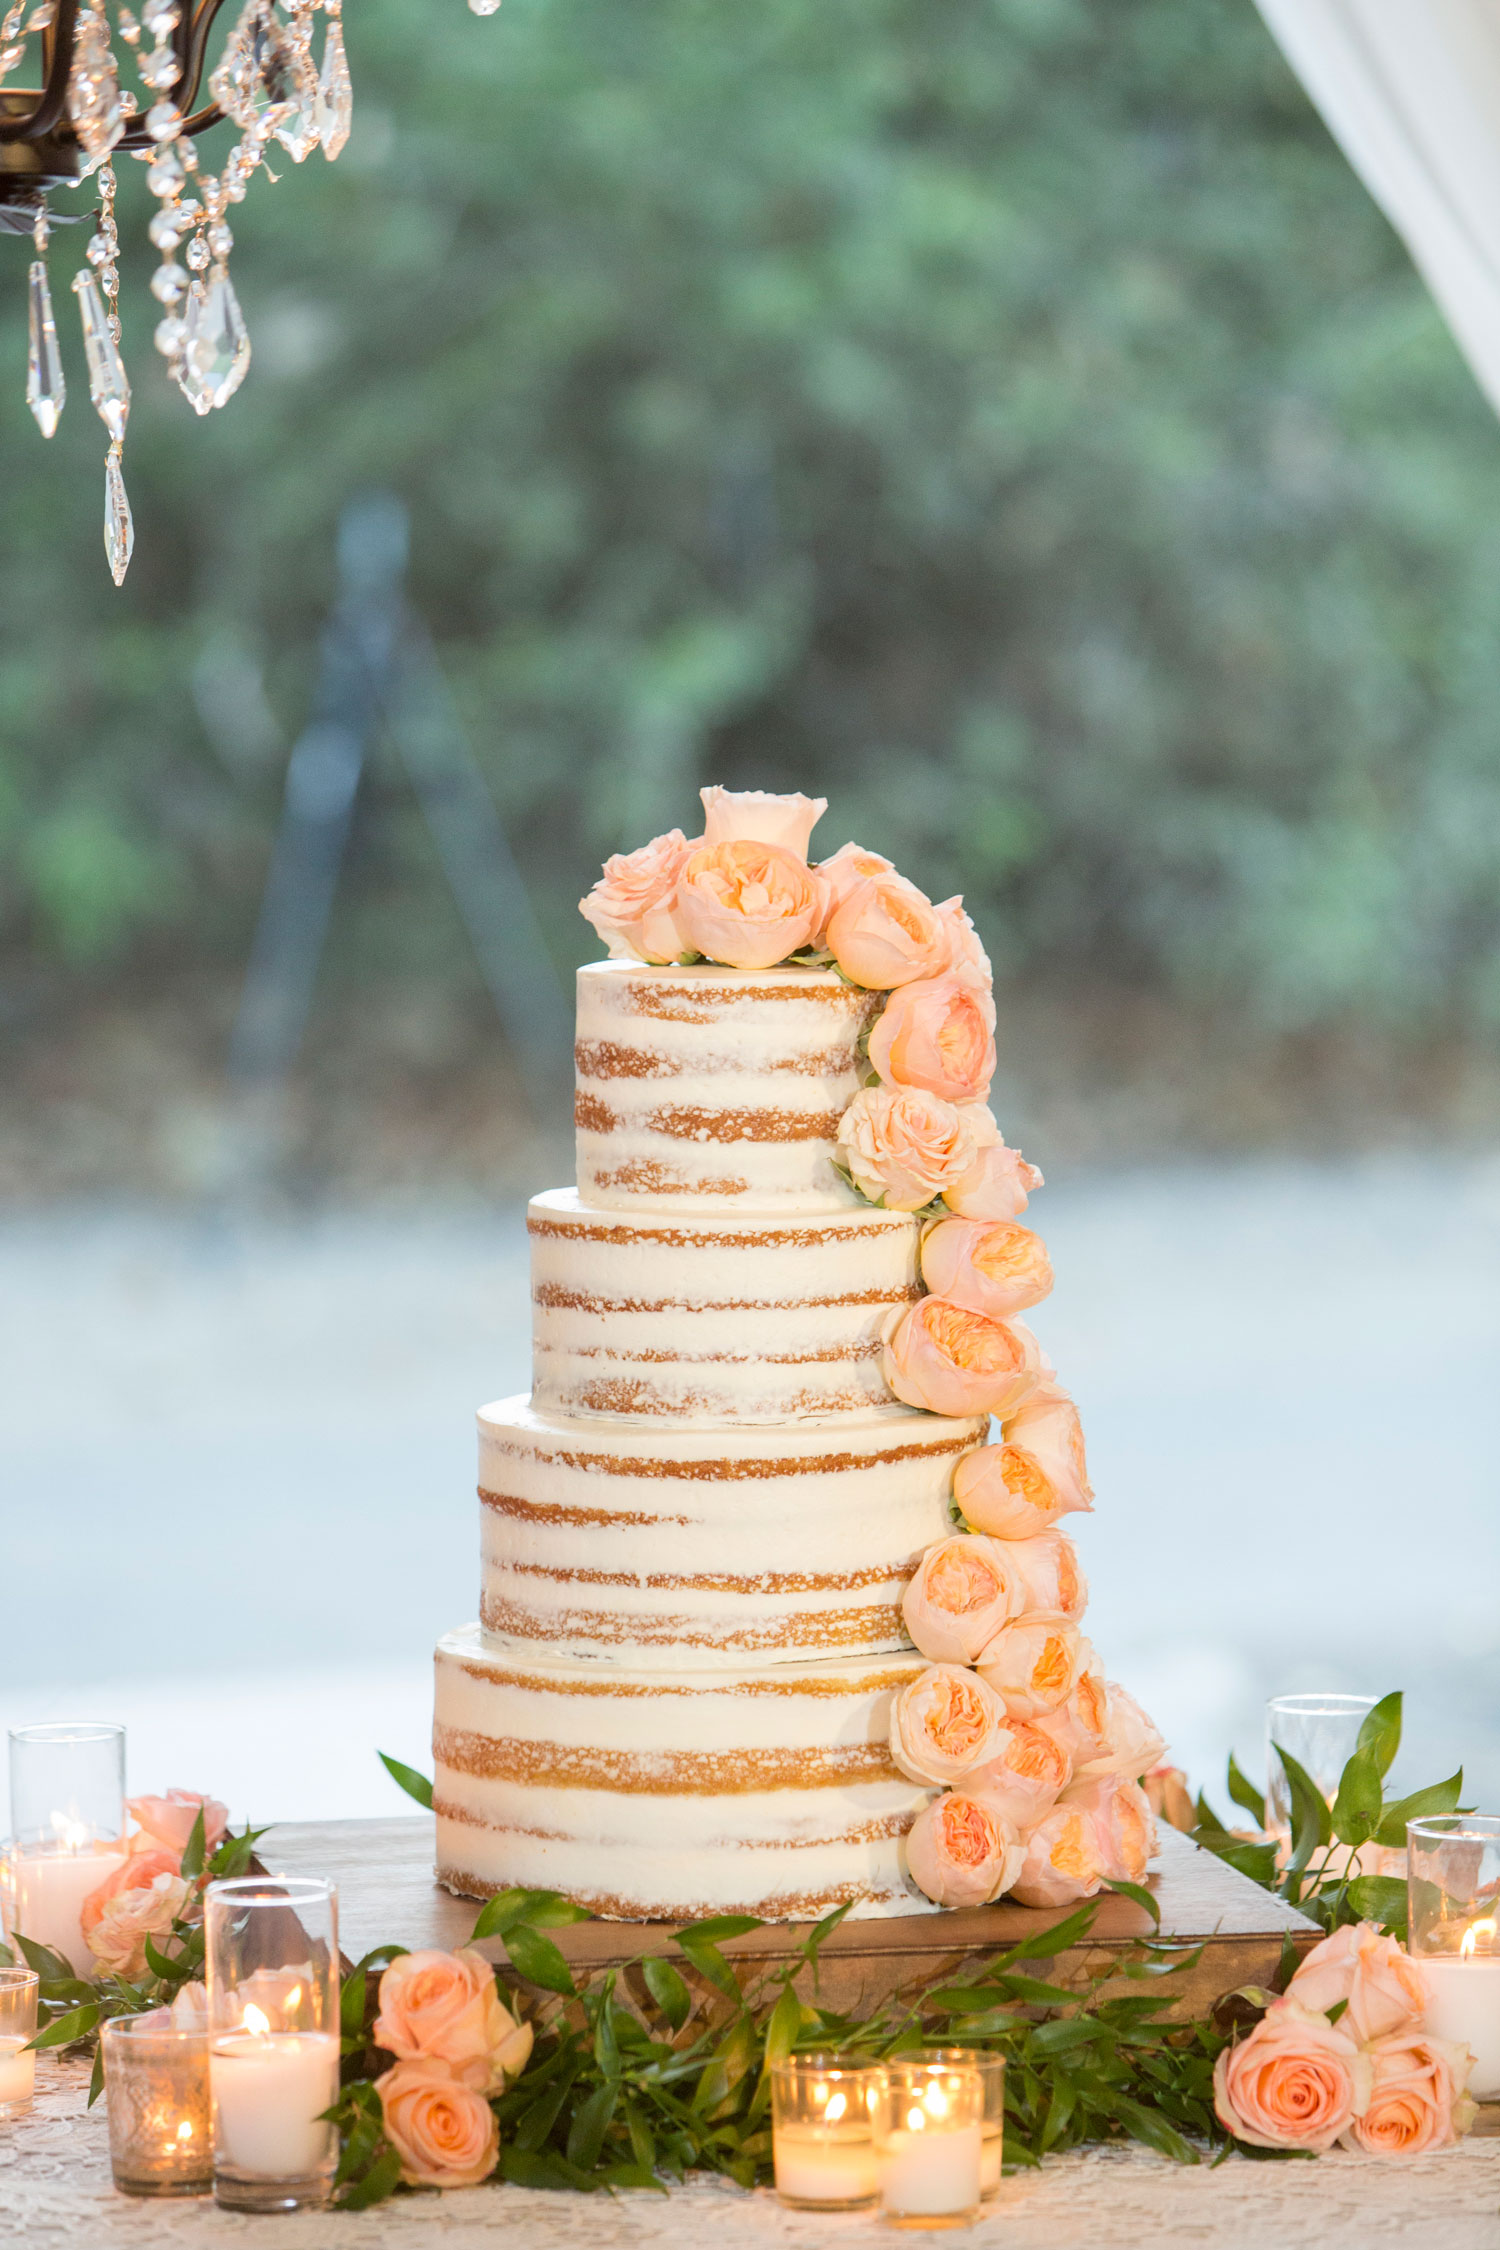 Rustic wedding cake ideas semi naked cake with fresh flowers